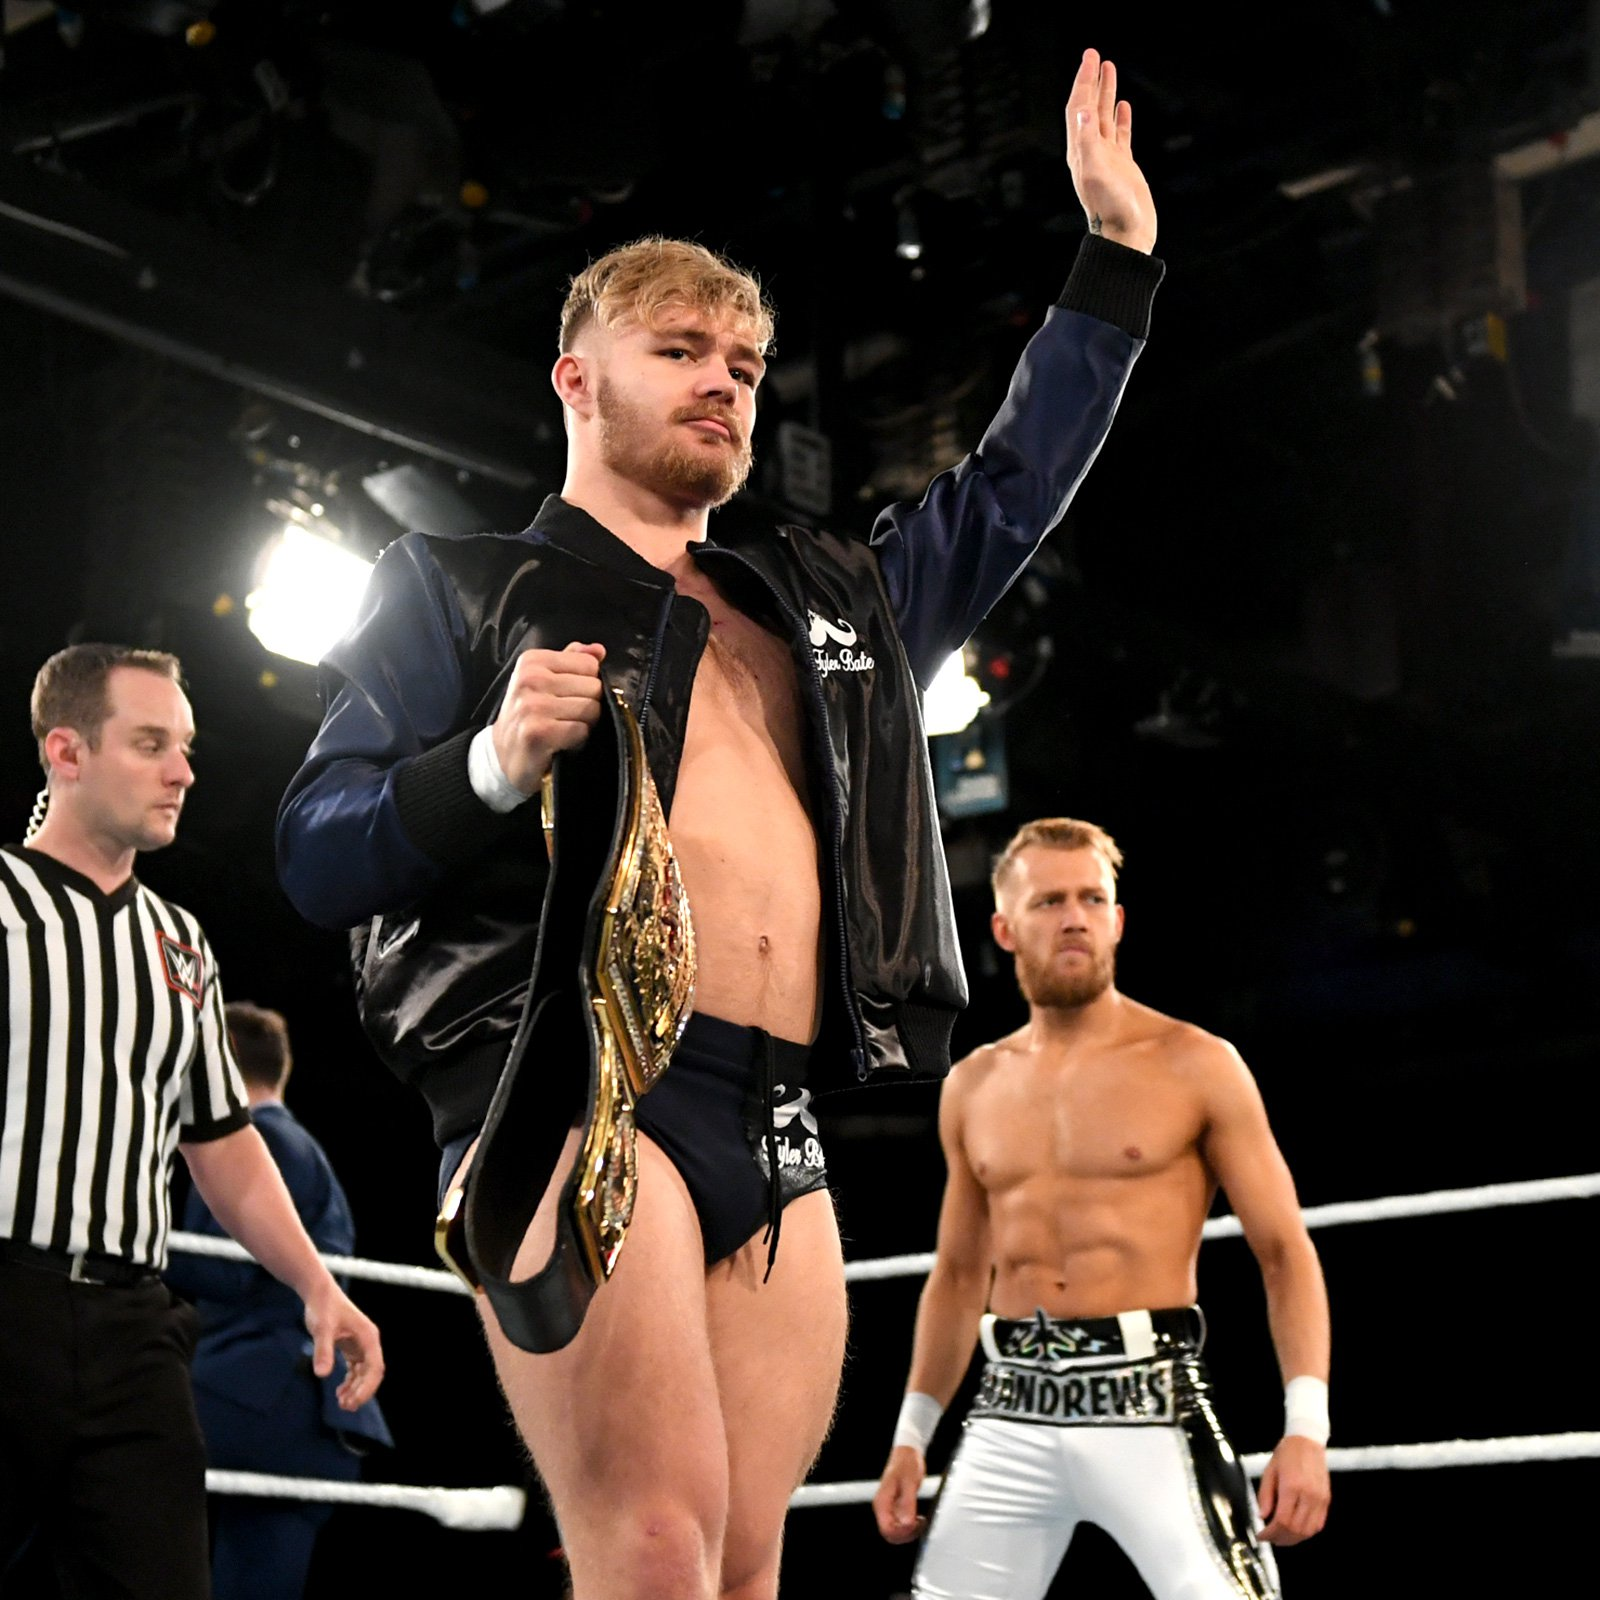 The current holder of that title, Tyler Bate, readies for action against the renowned, high-flying Mark Andrews.